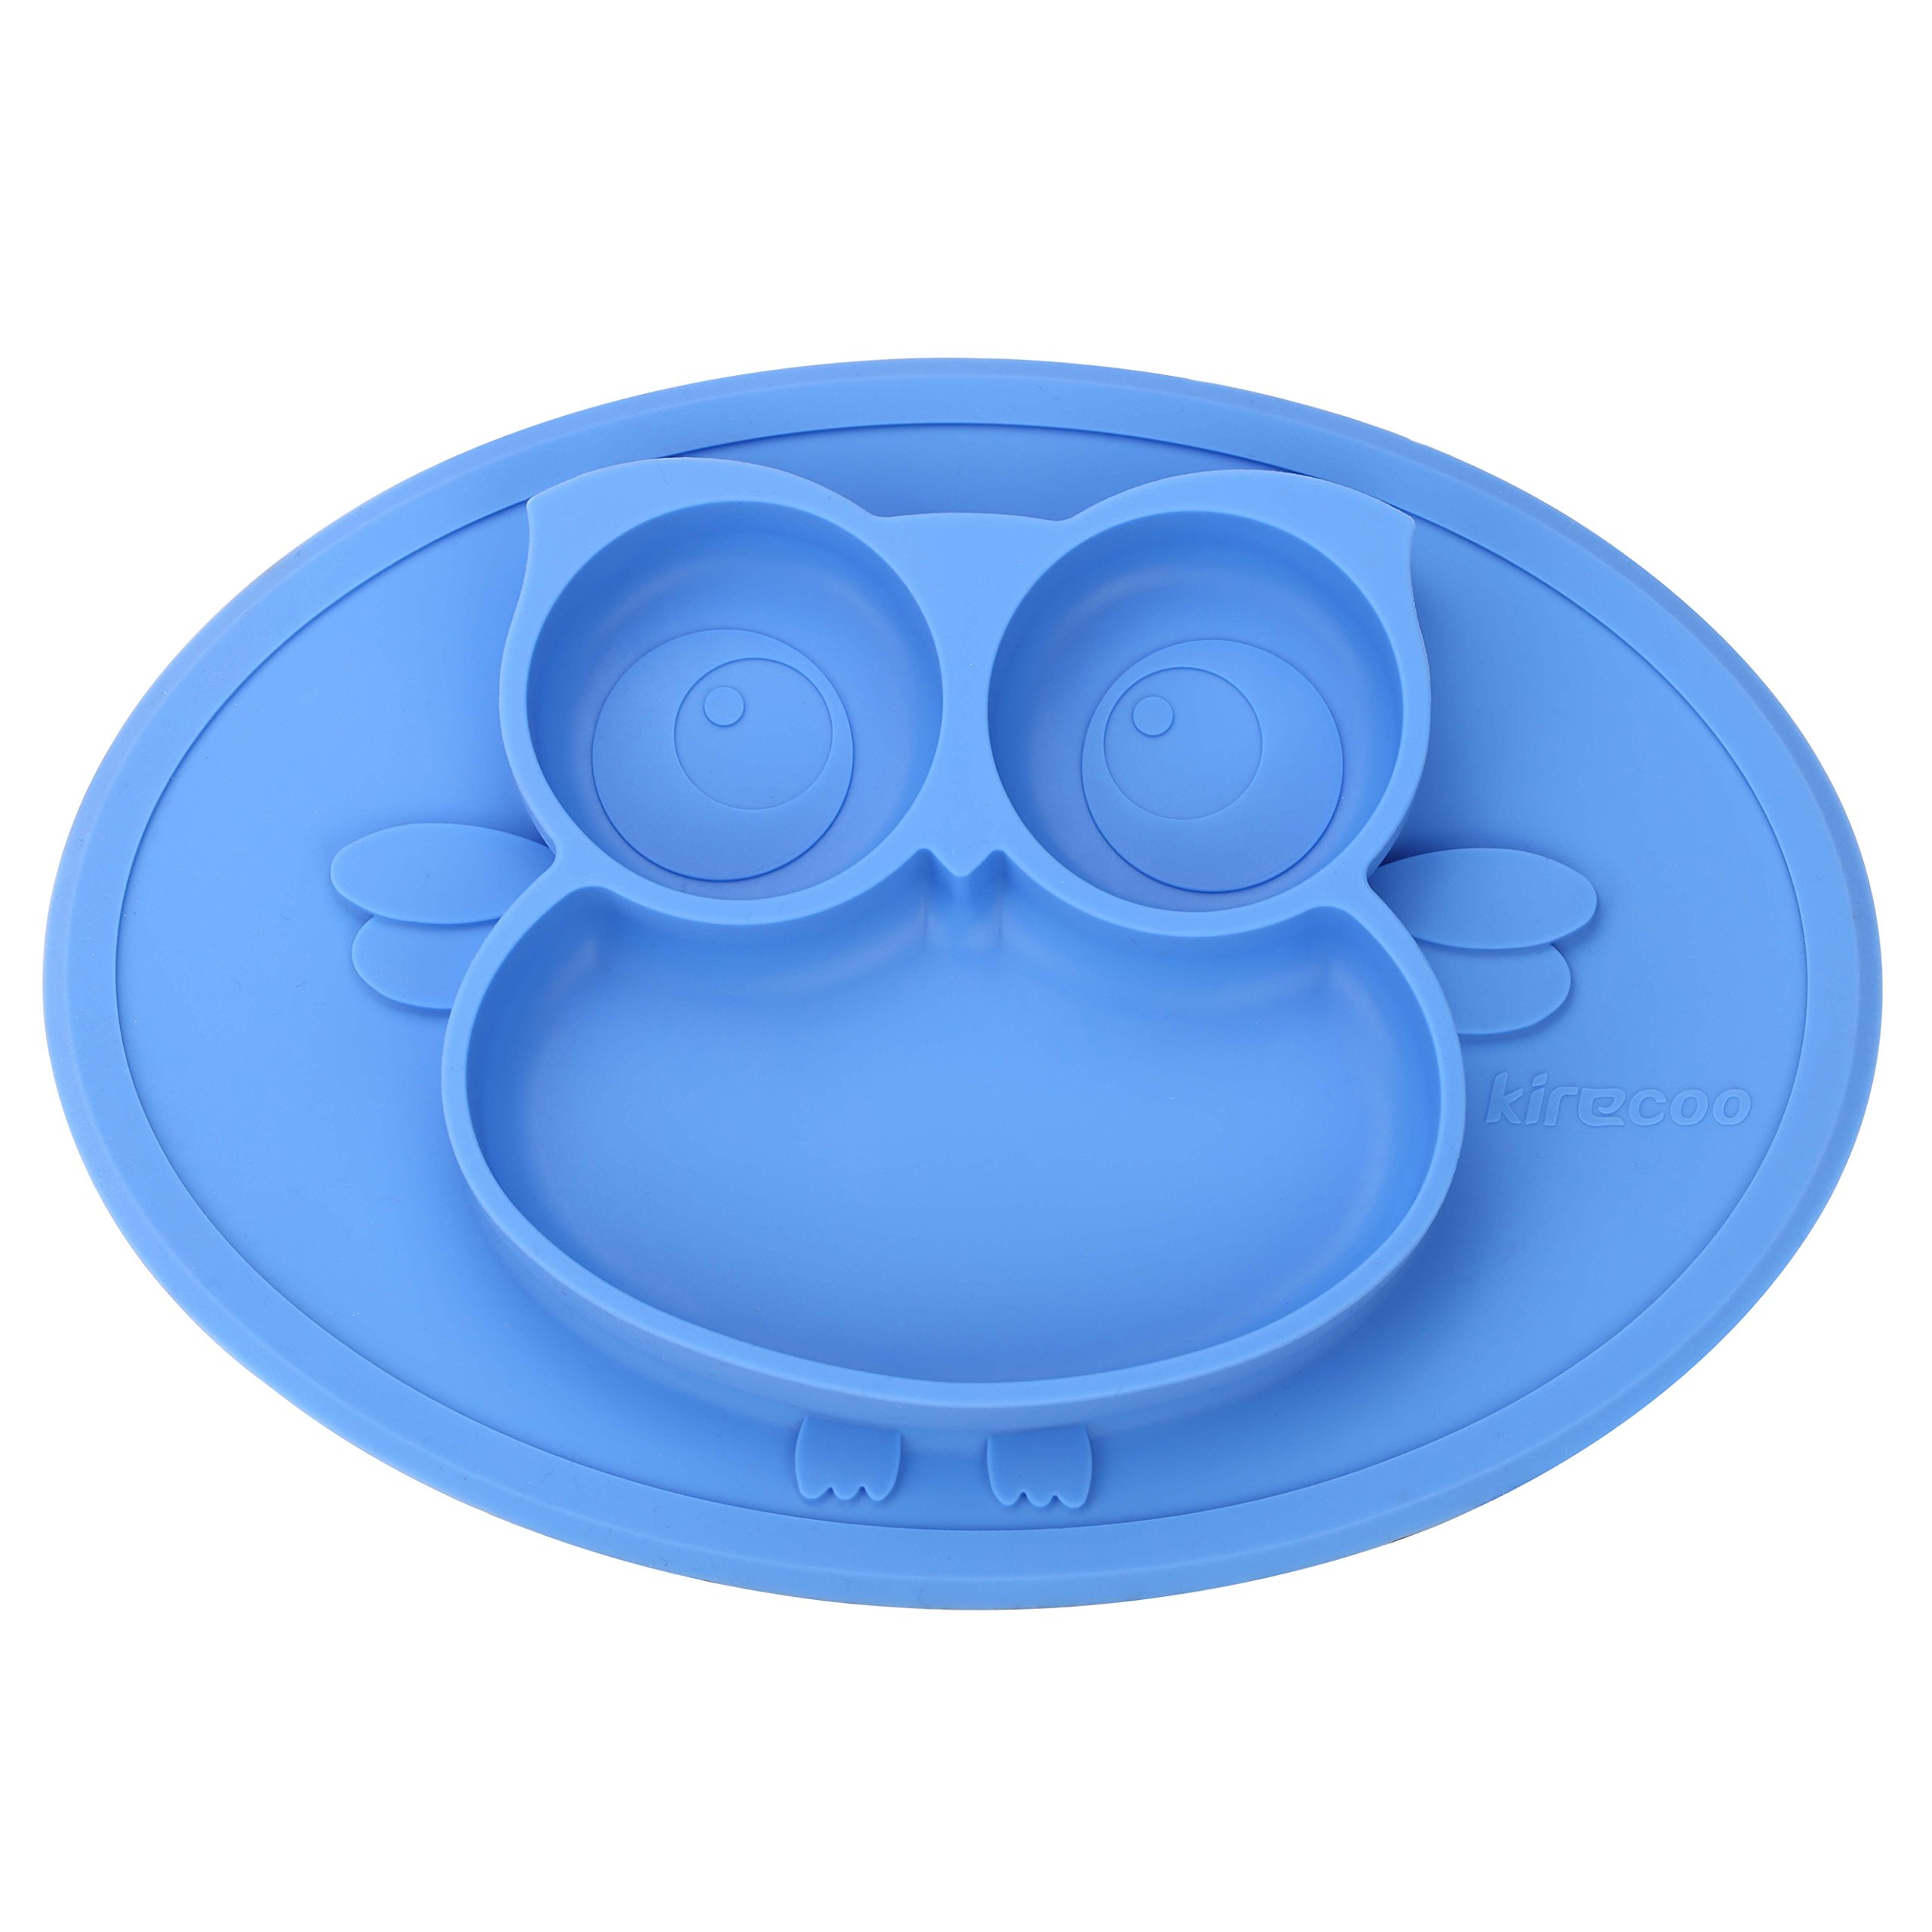 Amazon.com : Kirecoo Baby Placemat Owl Round Silicone Suction ...